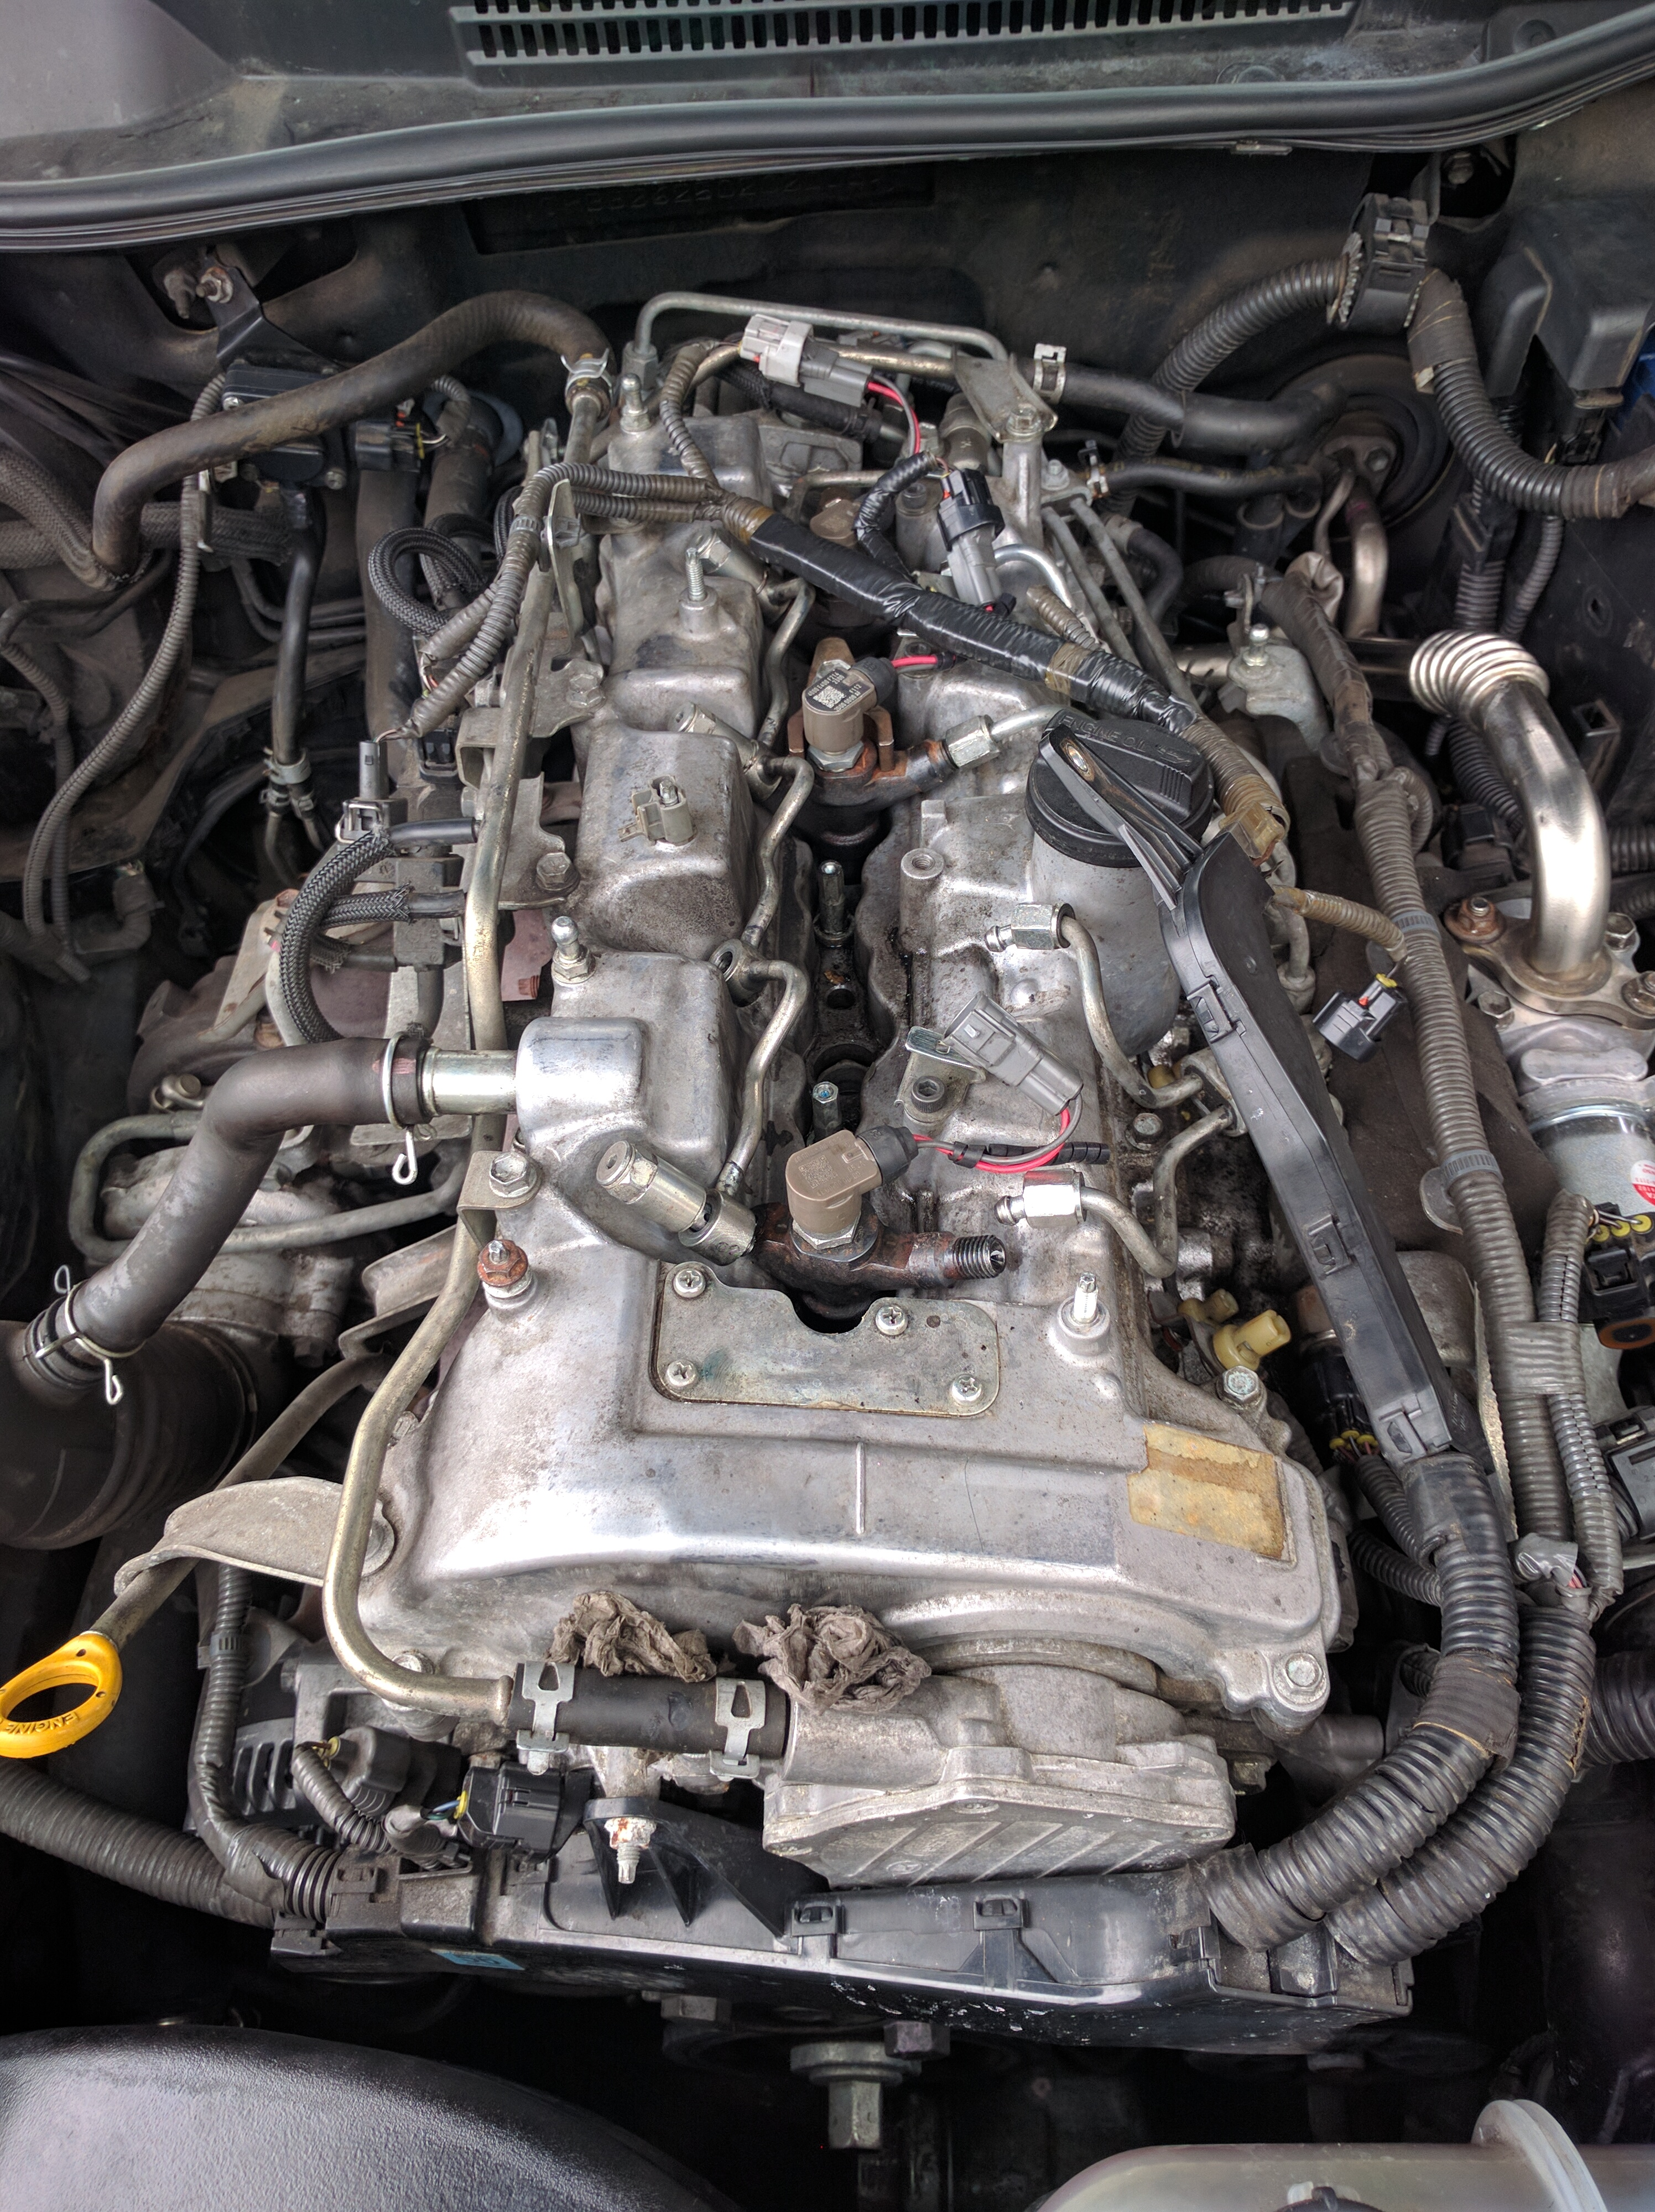 Lexus Is220d over fueling, misfire and oil level rising?